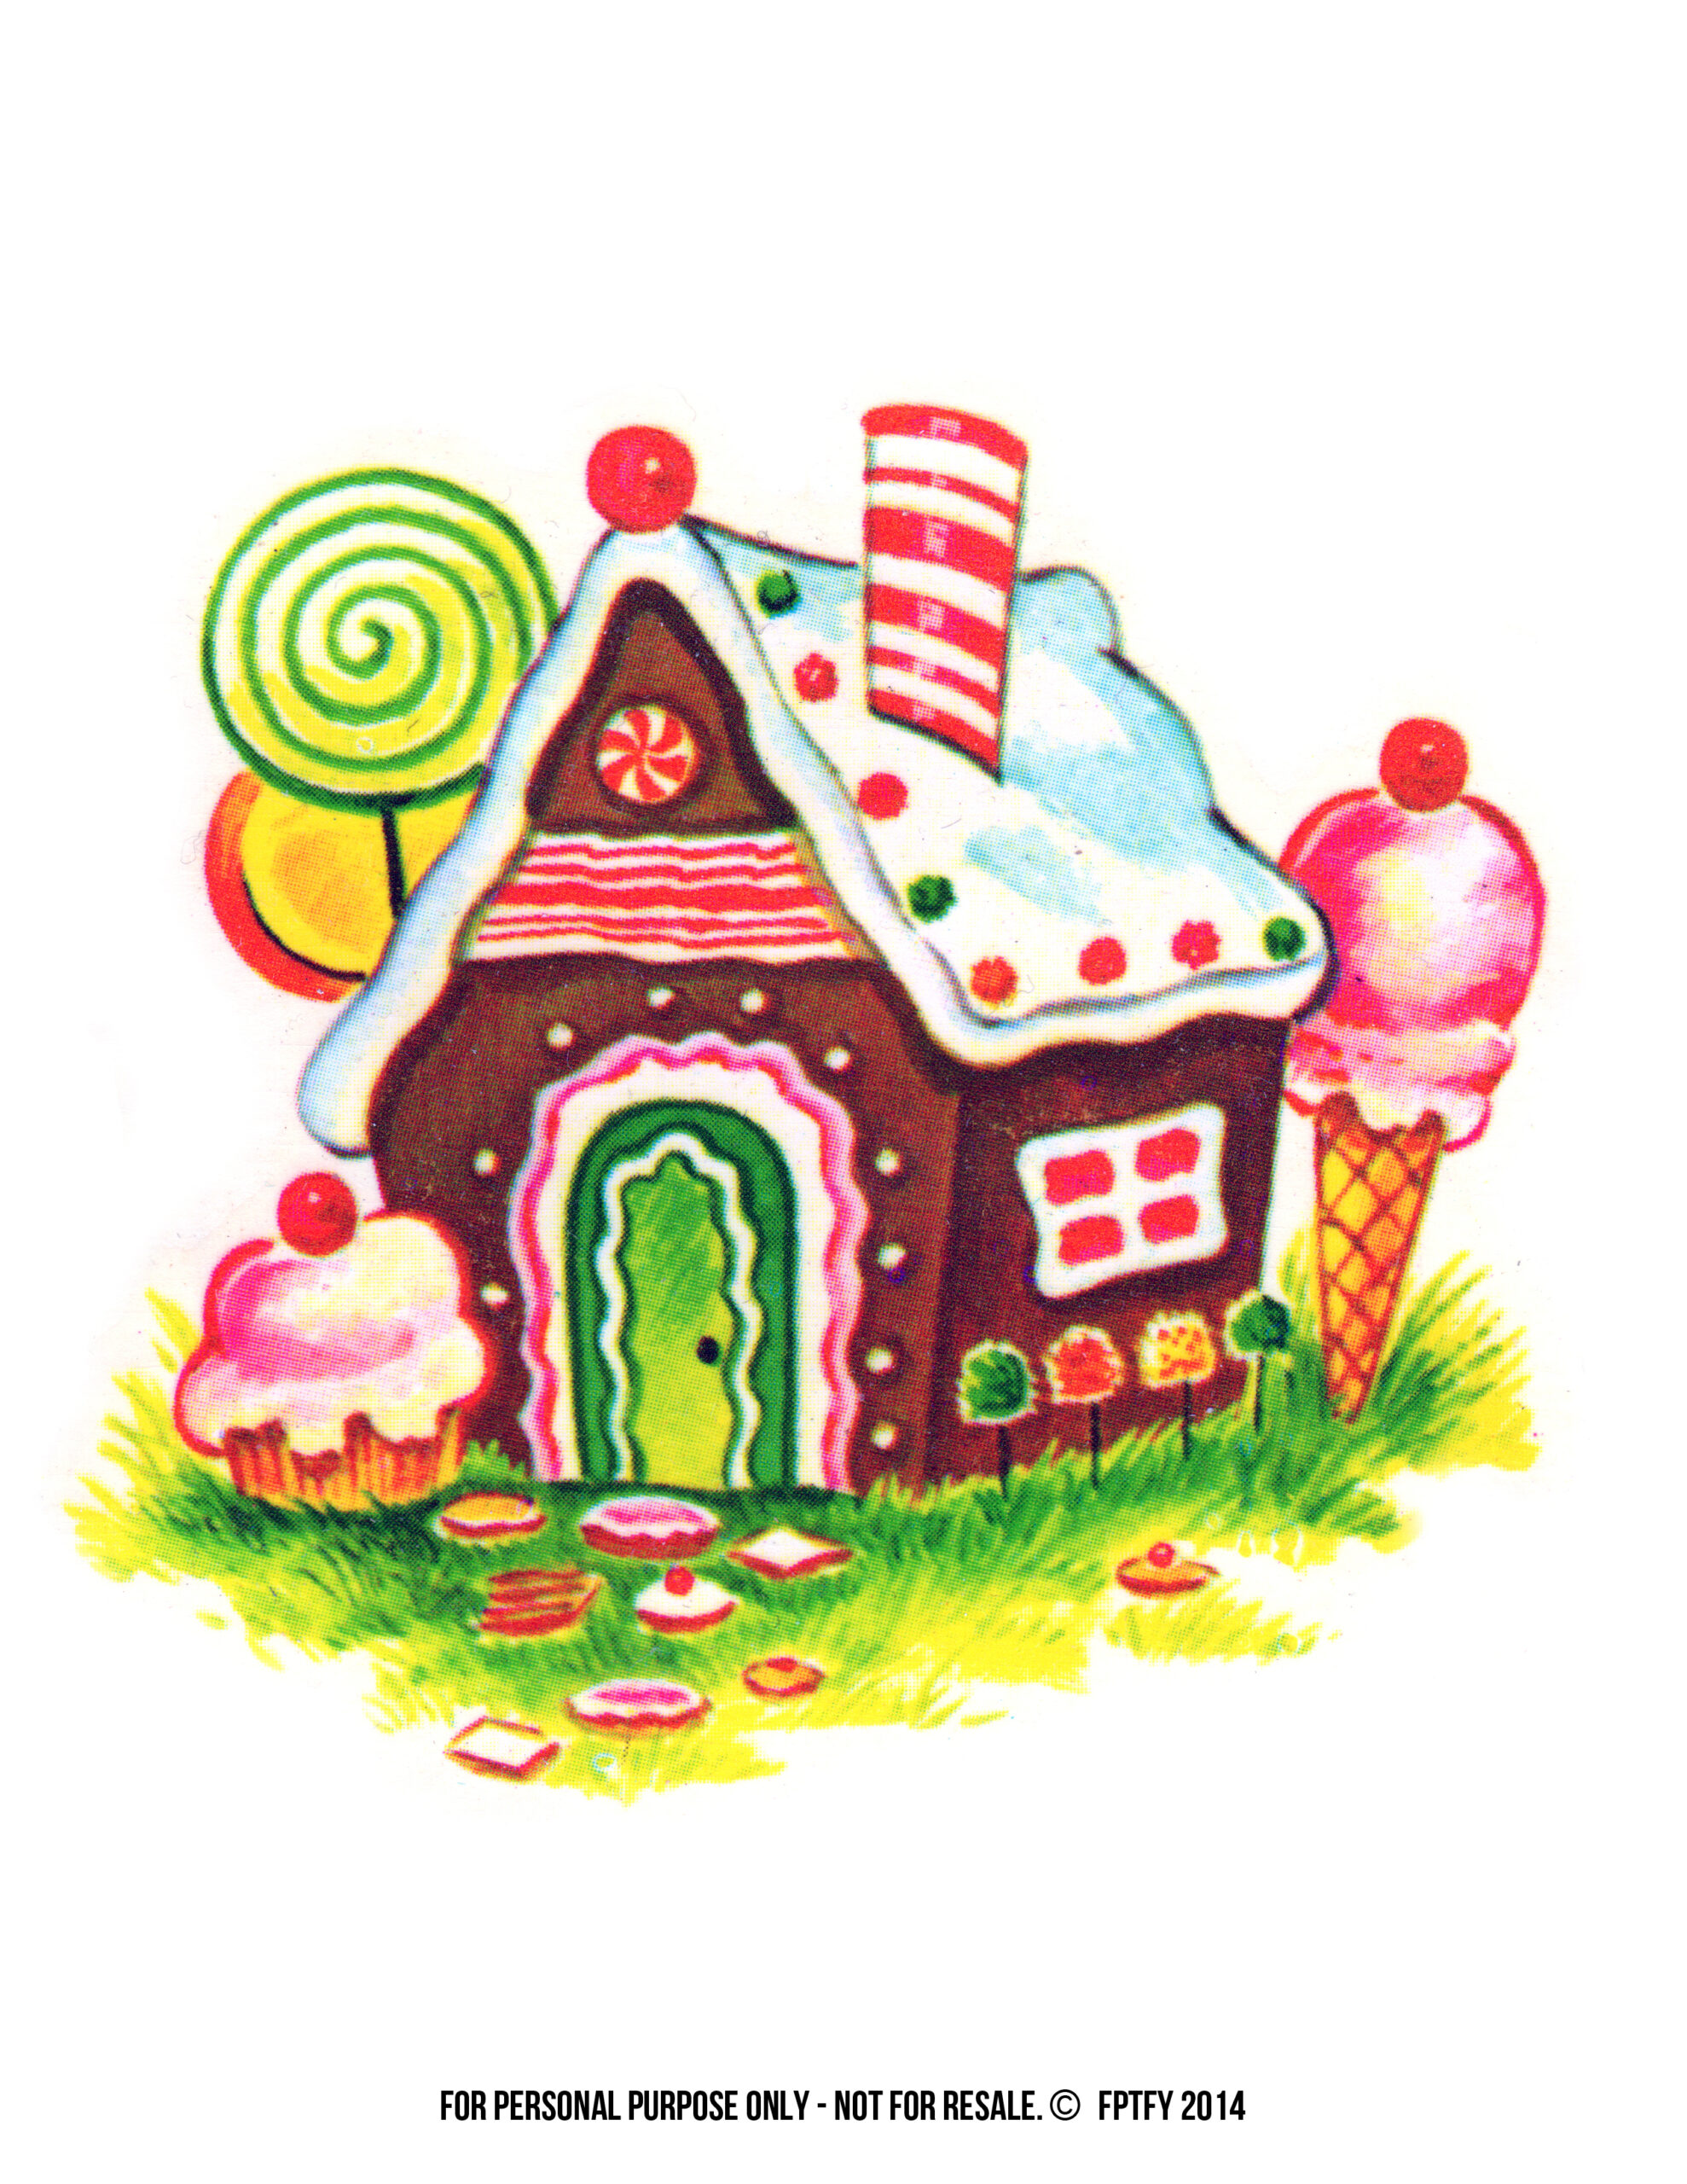 Christmas Images: Gingerbread House Clip Art - Free Pretty Things ...